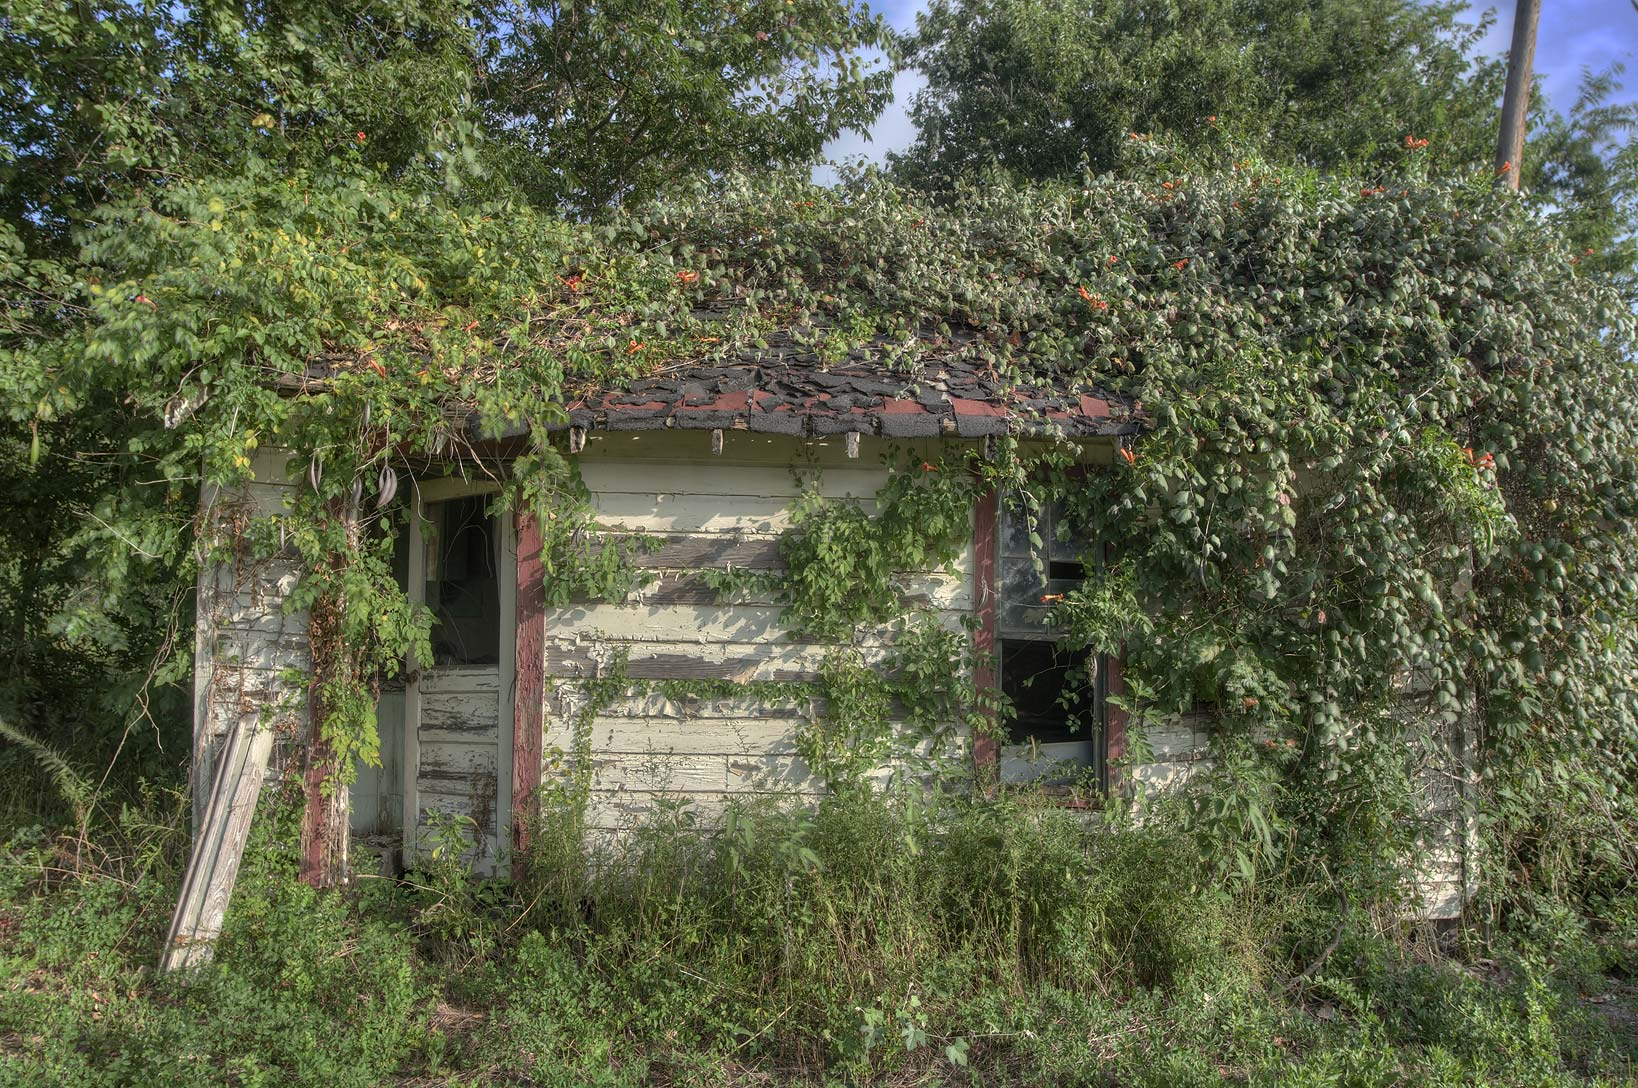 Overgrown house in area of West Barton St.. Calvert, Texas